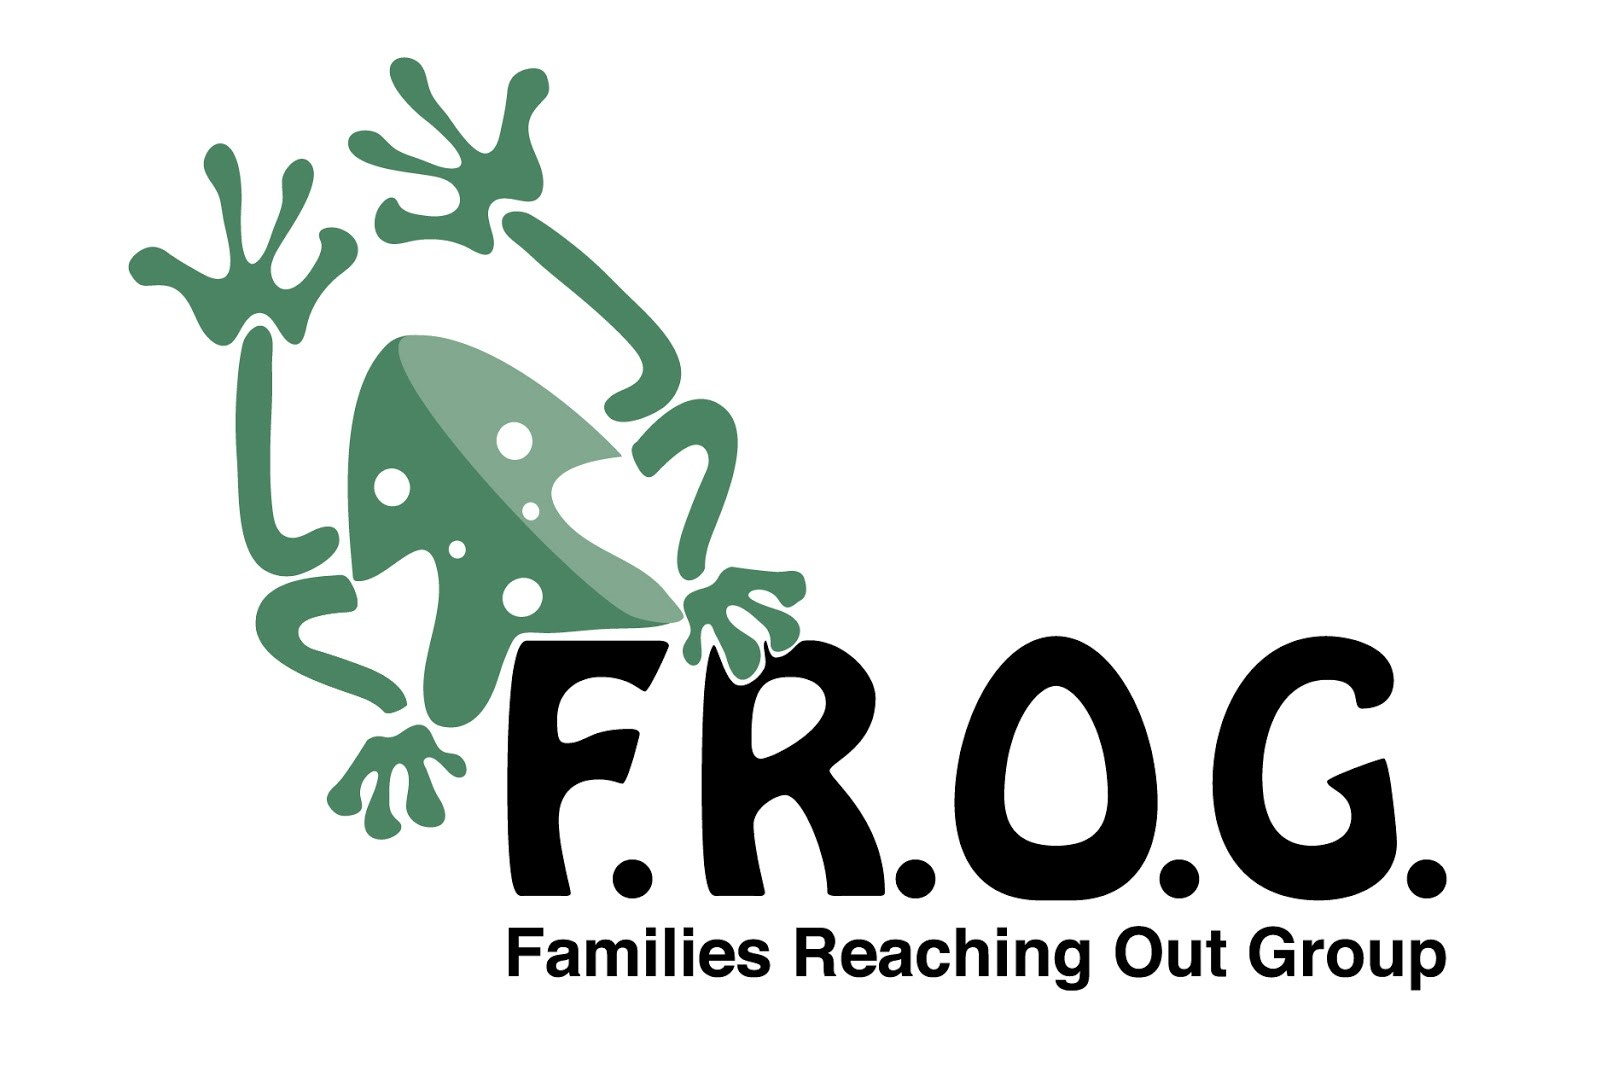 Families Reaching Out Group